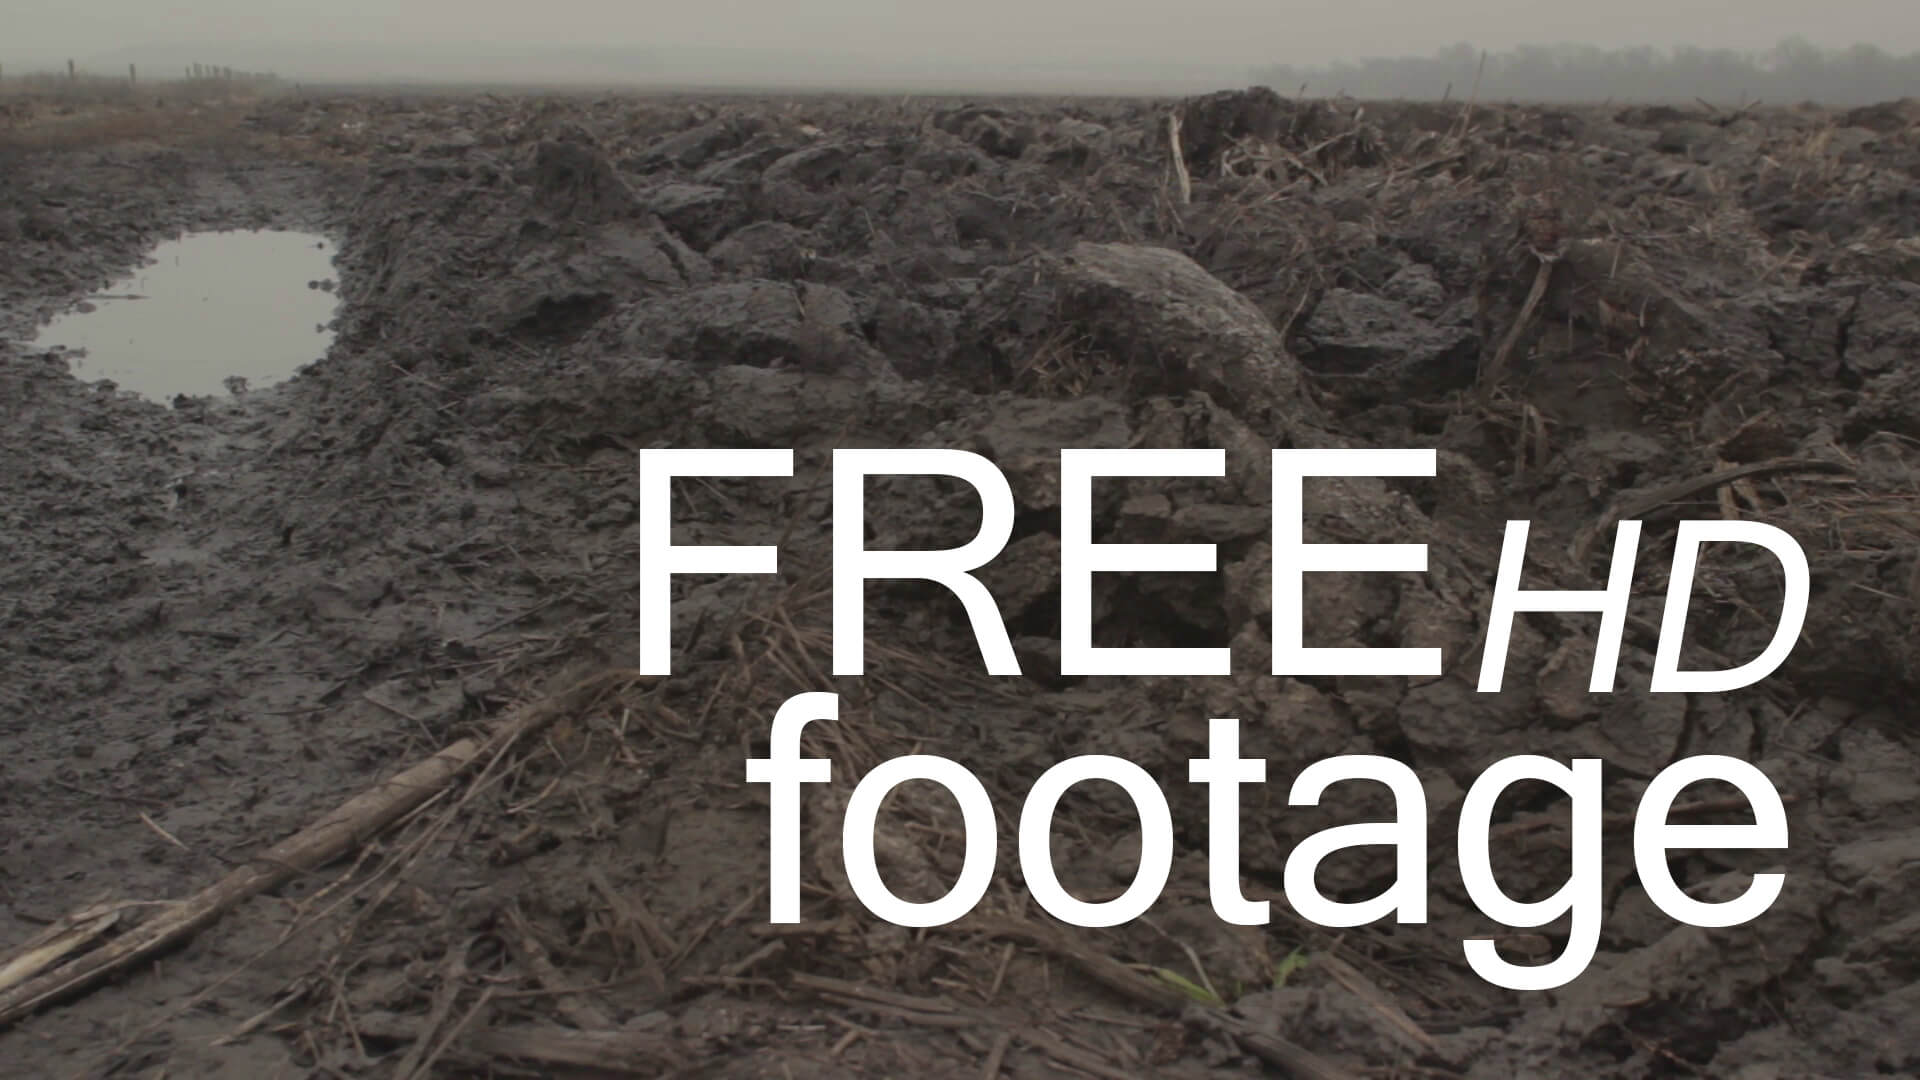 fog and field free hd footage d -